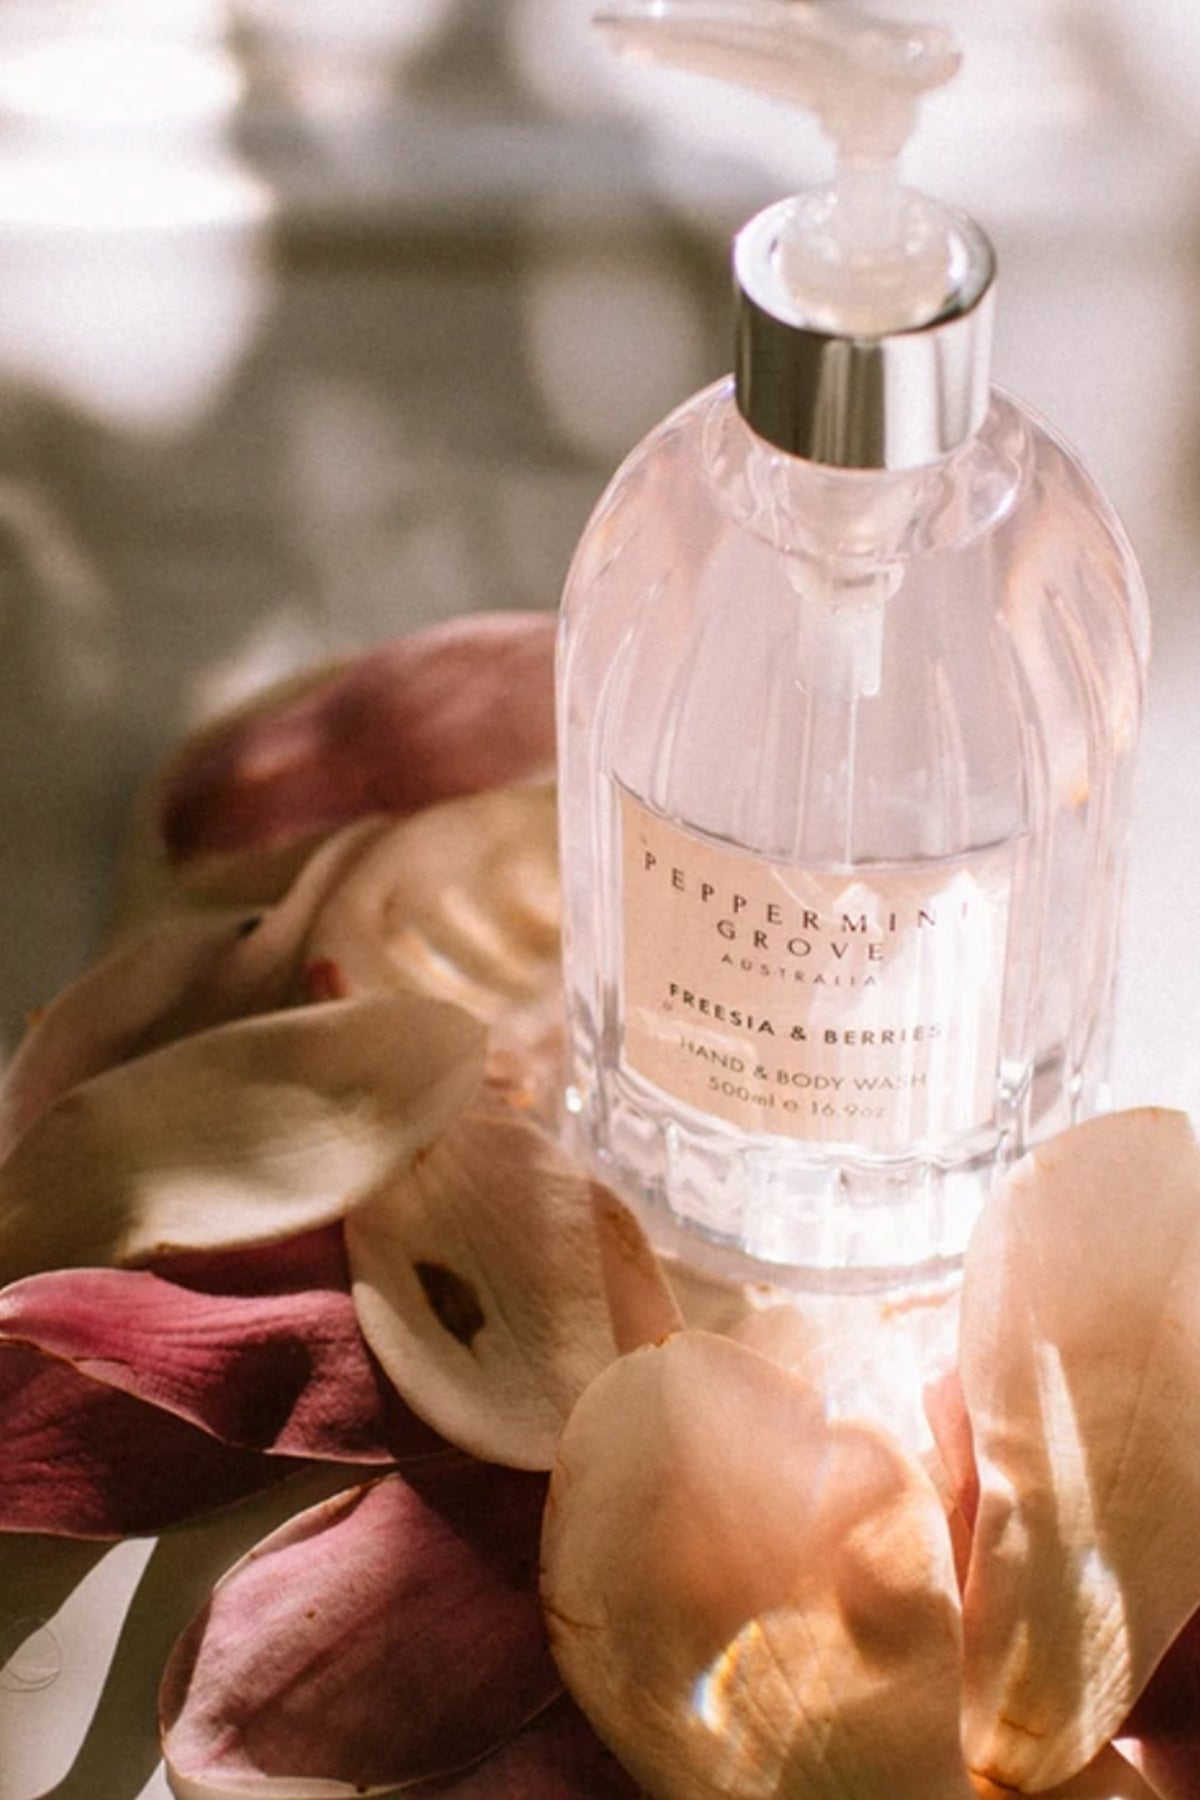 hand wash freesia & berries